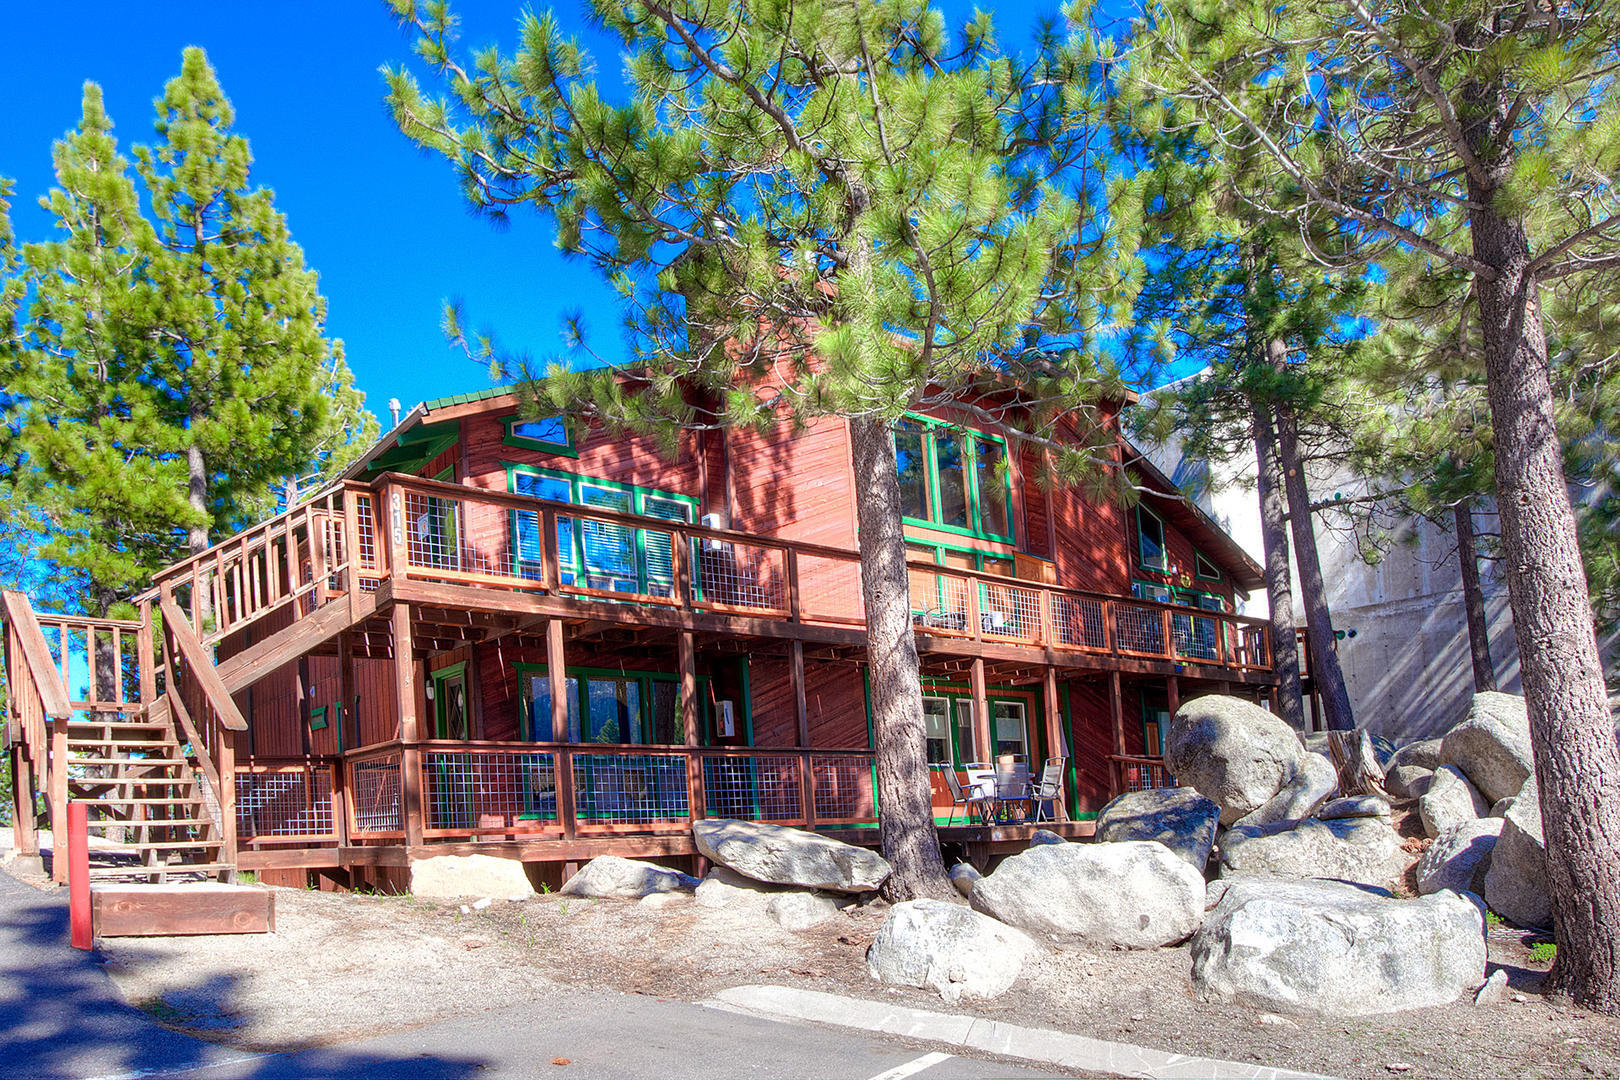 hnc0804 Lake Tahoe Vacation Rental